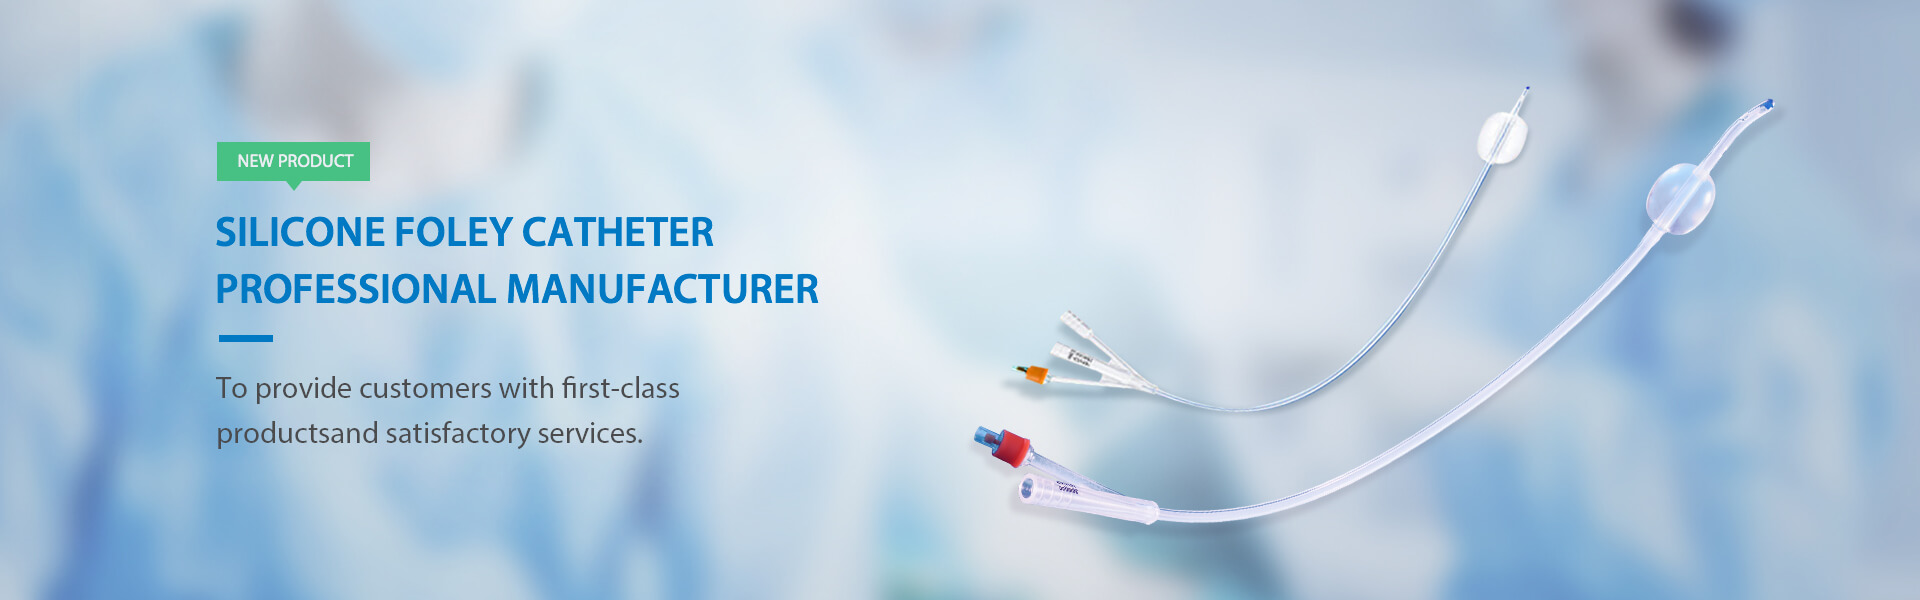 silicone foley catheter Professional manufacturer